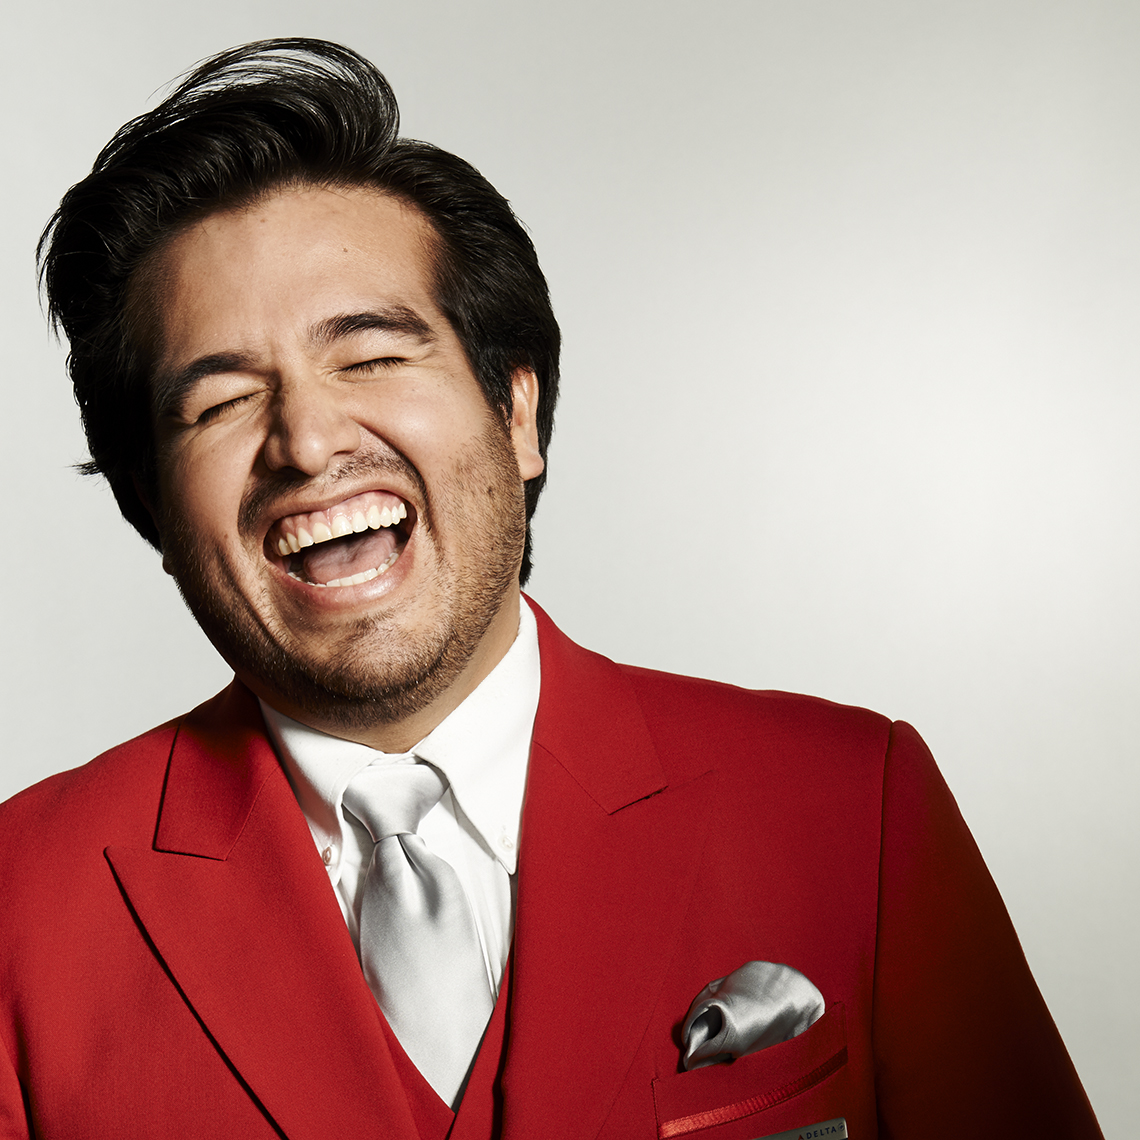 Delta Red Coat_Hispanic Man_Laughing